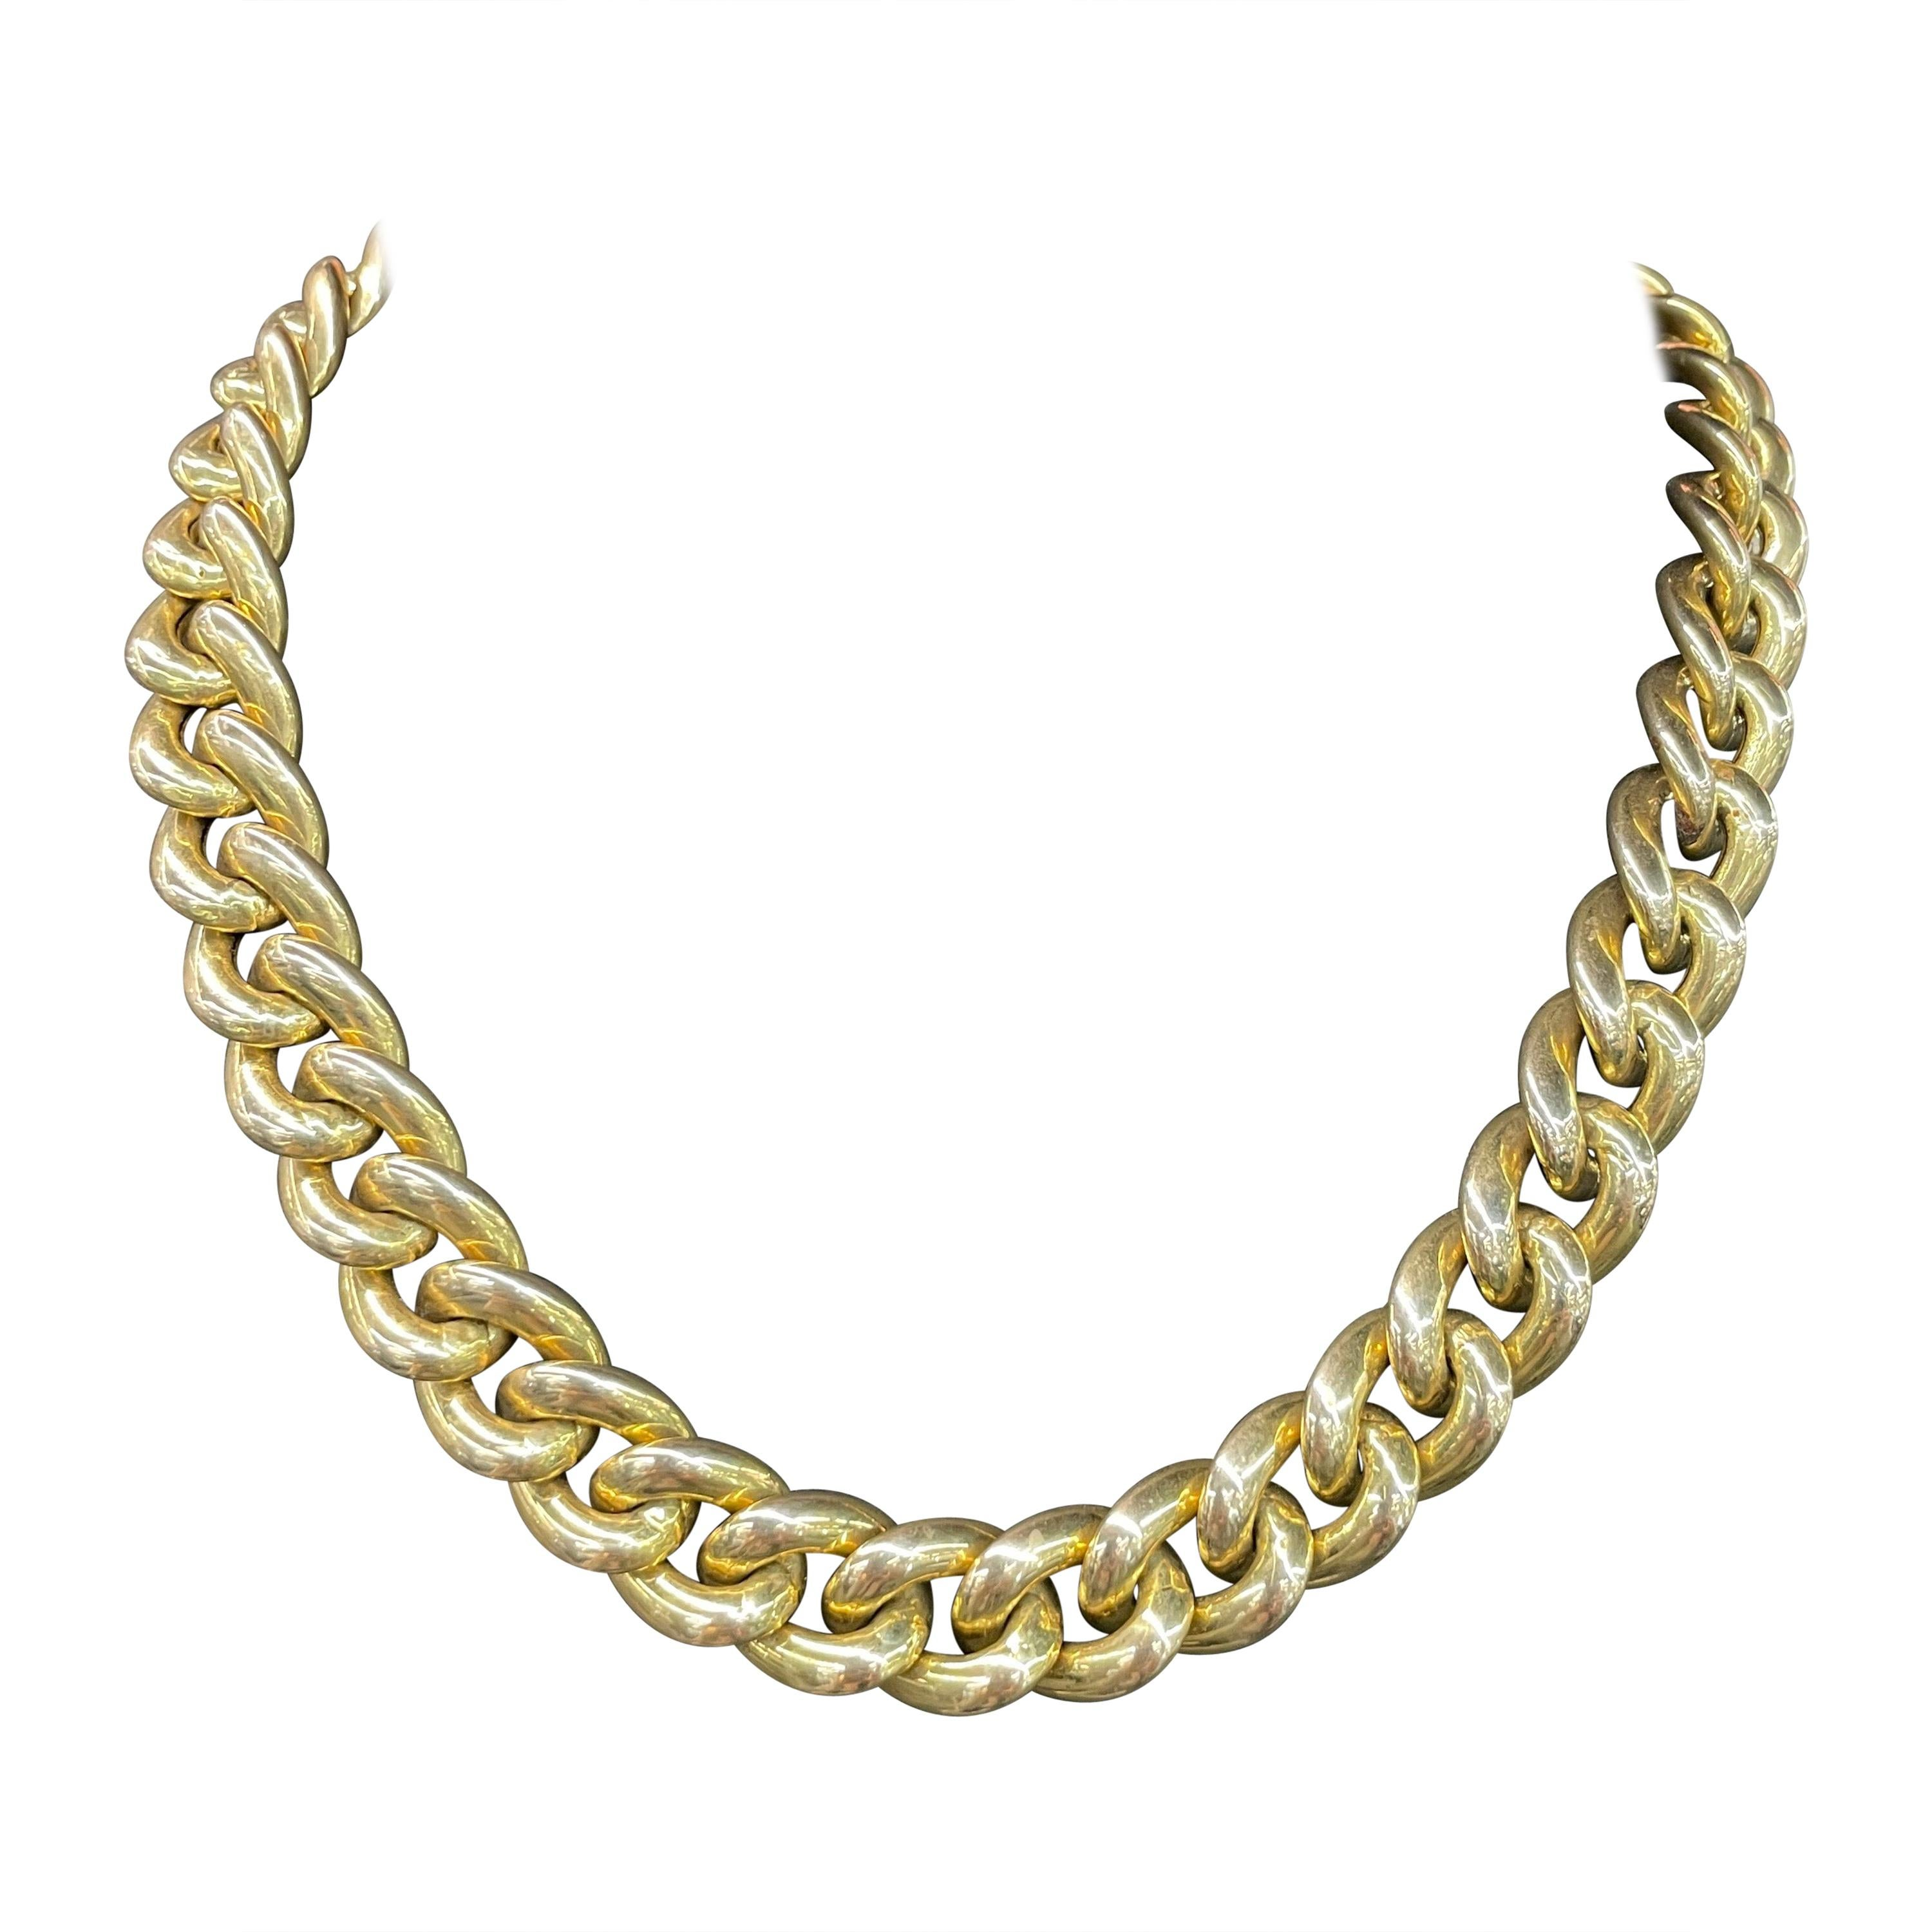 14 Karat Yellow Gold Link Necklace 47.6 Grams Made in Italy